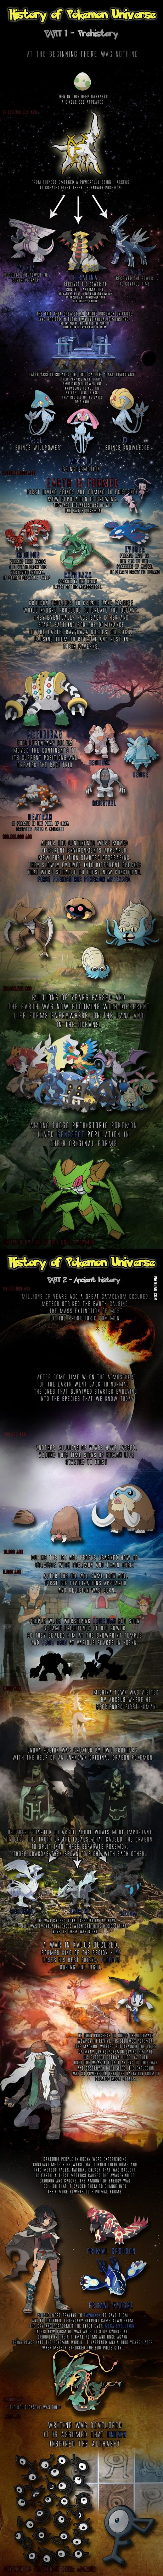 Pokemon History 101